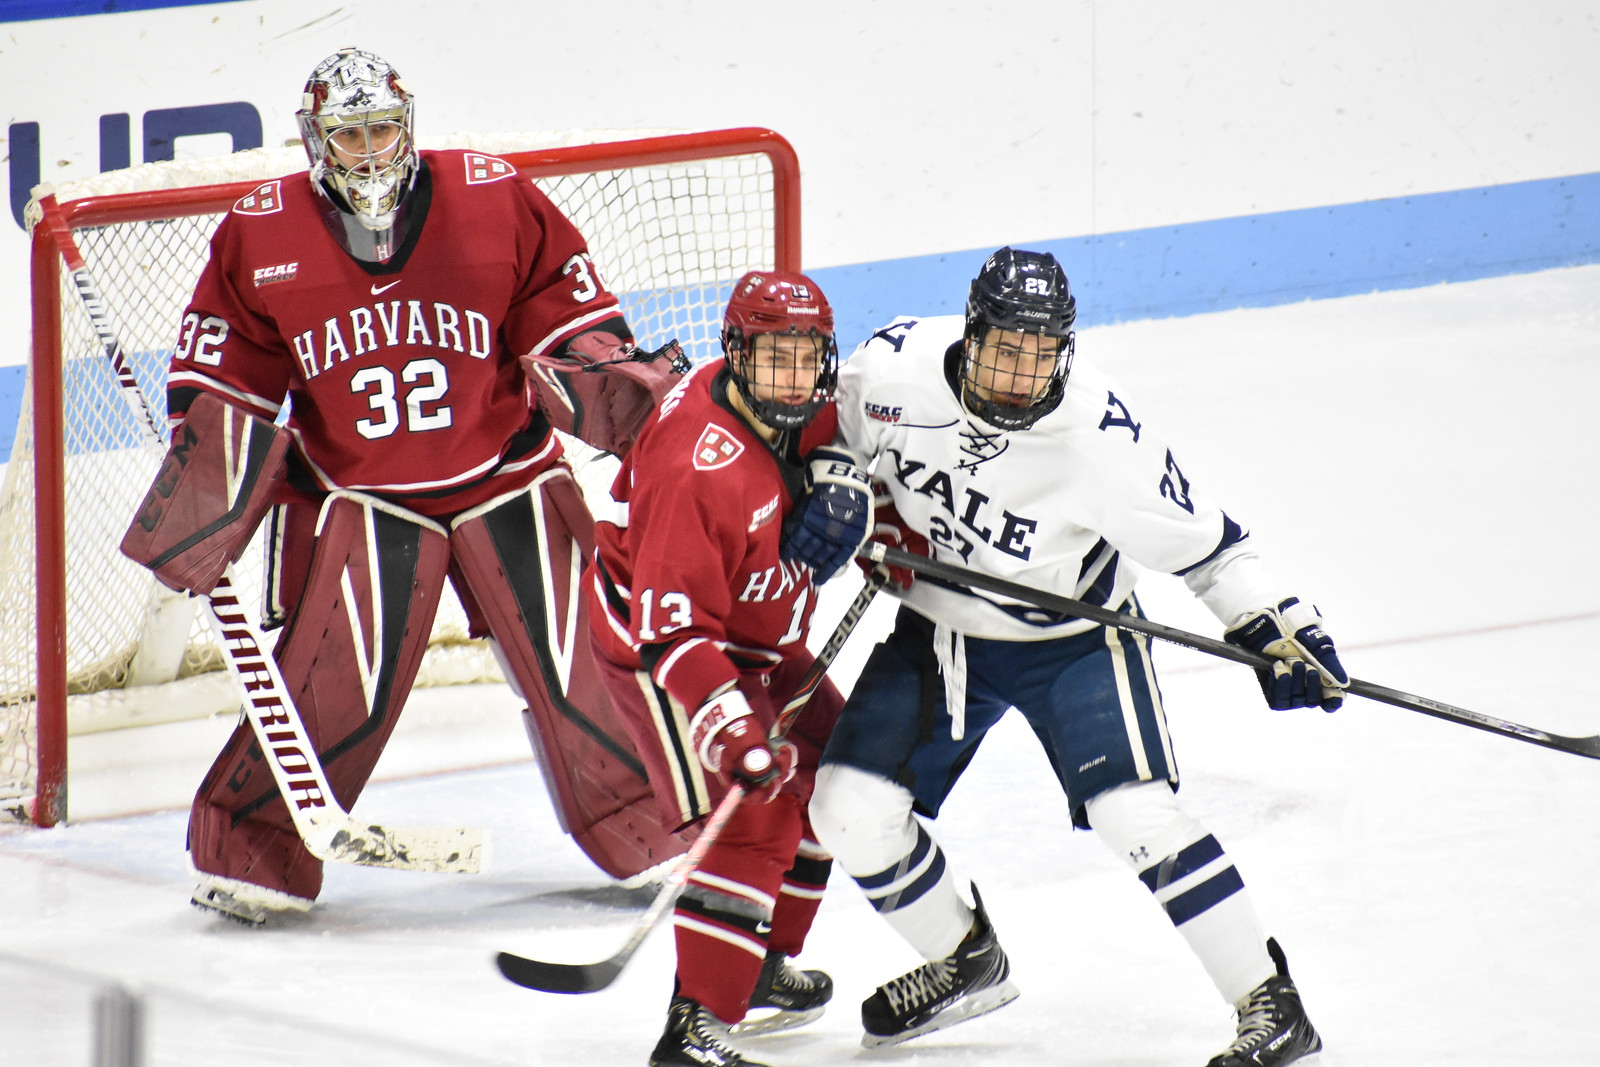 Harvard-Yale matchups promise to be hard-fought, physical, and fast-paced, irrespective of the teams' records entering a given contest.